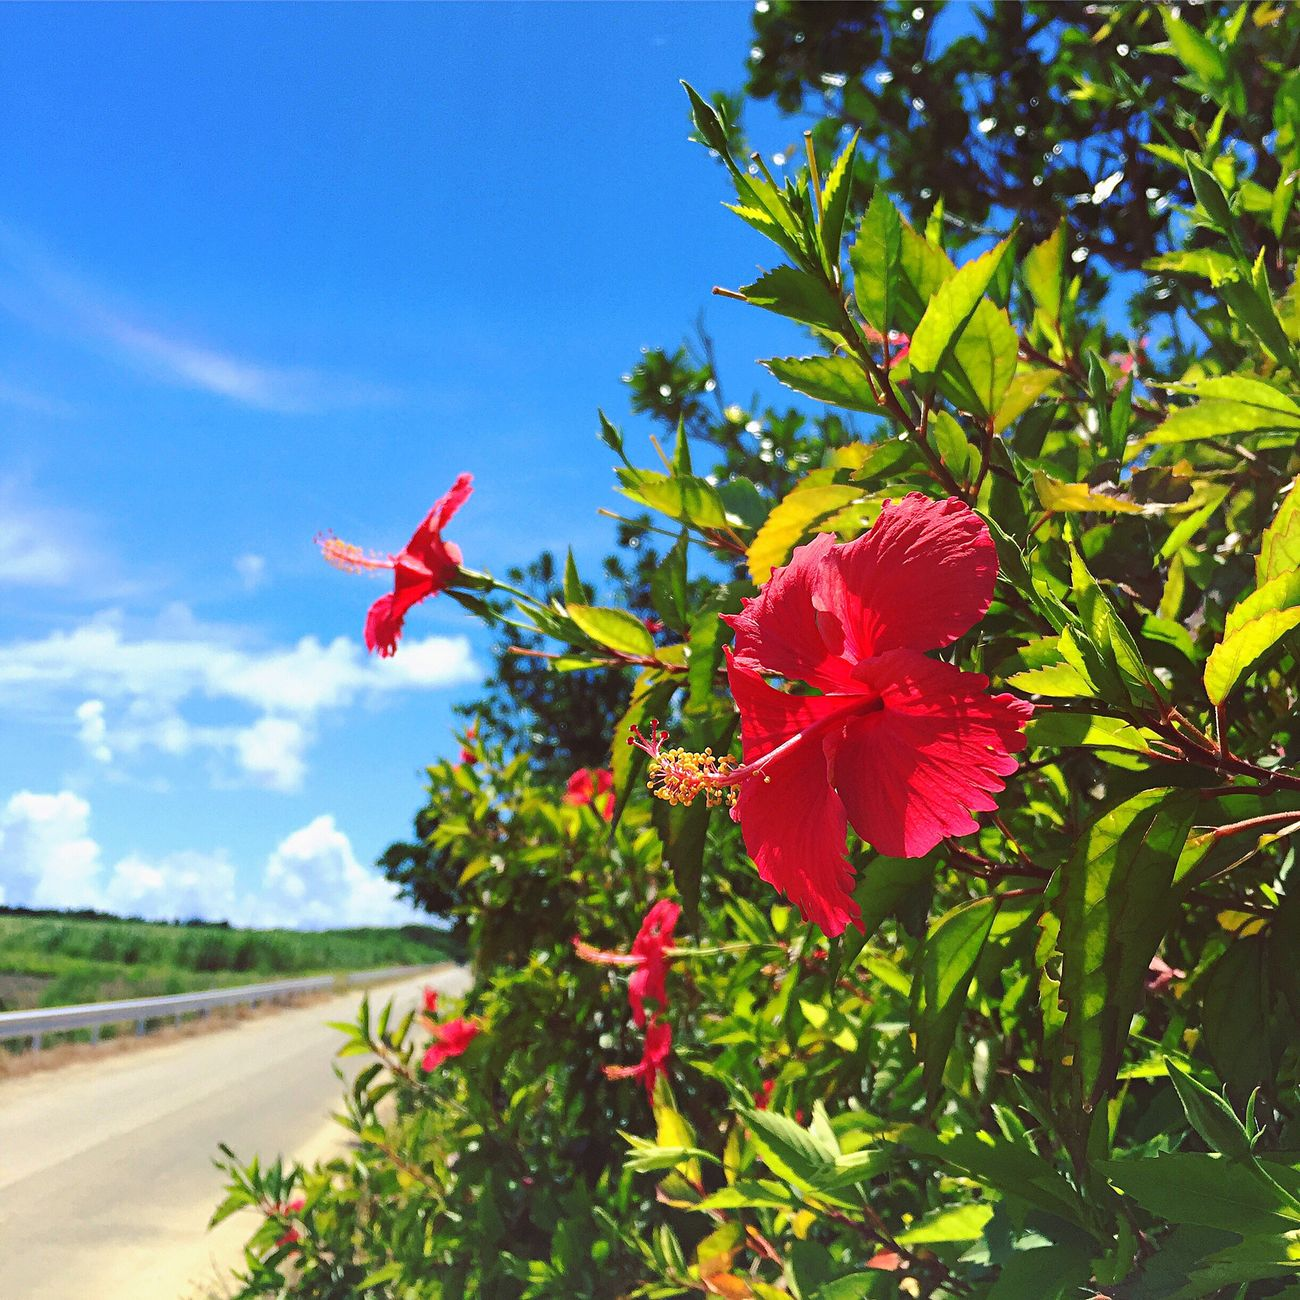 ハイビスカス Hibiscus Hibiscus 🌺 HibiscusFlowers Hibiscus Flower Hibiscus Red RedFlower Redflowers Tropical Tropical Plants Tropical Flowers Yaeyama Okinawa Haterumajima Green Leaves Blue Sky Sky